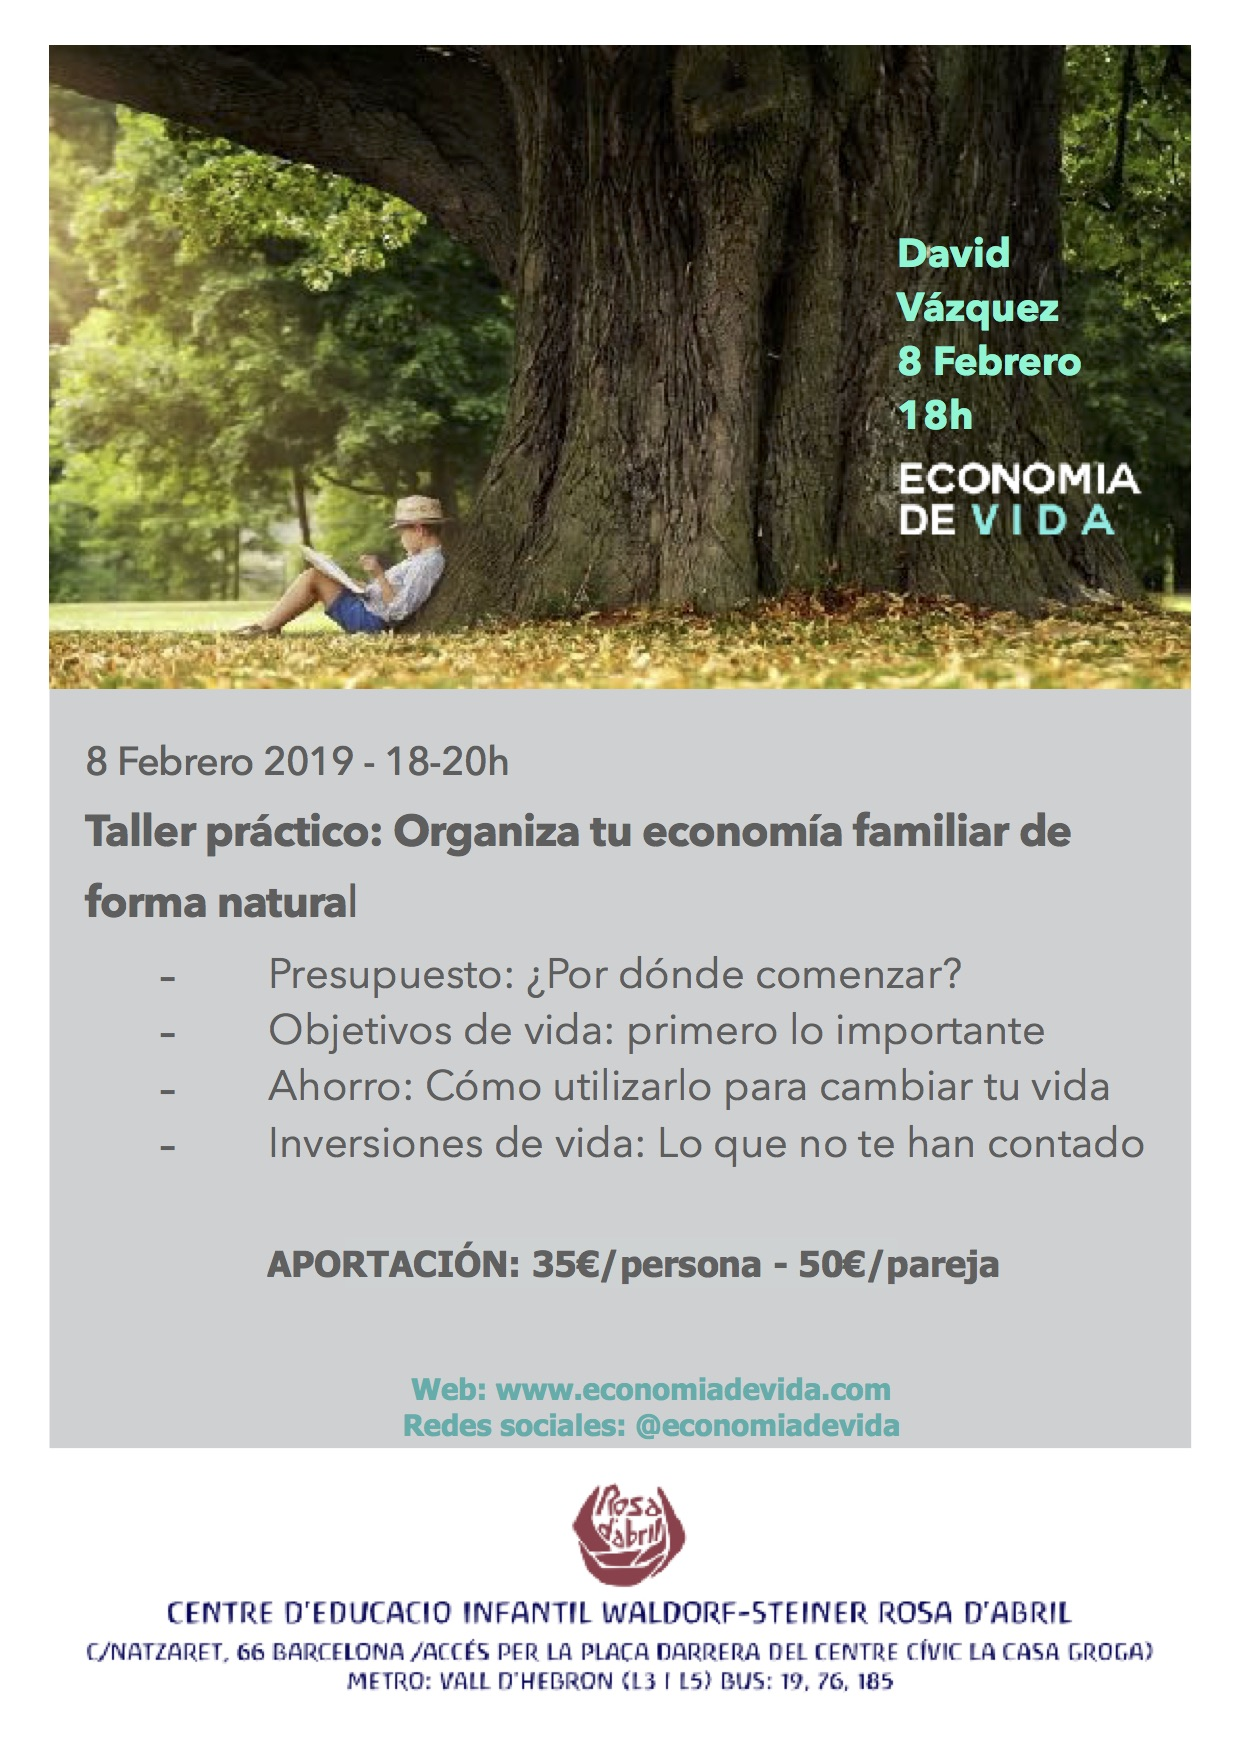 Organiza tu economia familiar de forma natural 8022019jpg